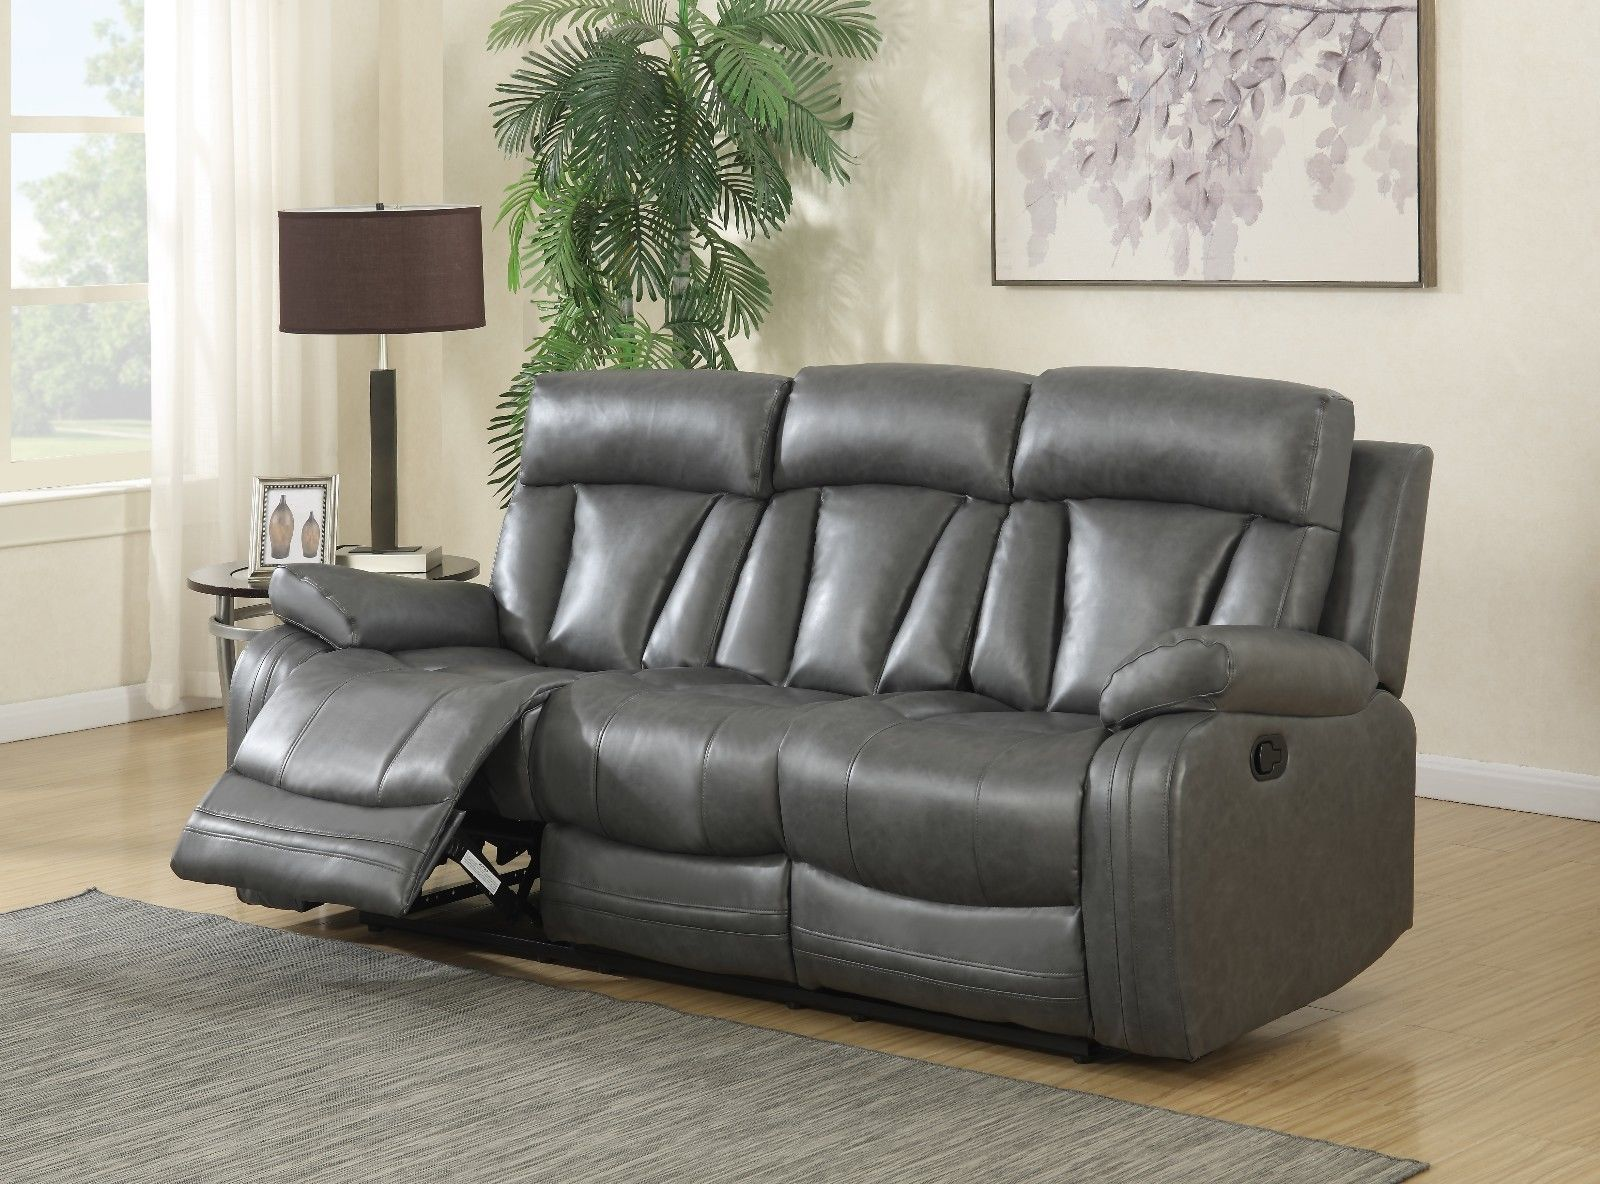 Meridian 645 Avery Living Room Sofa in Grey Bonded Leather Contemporary Style